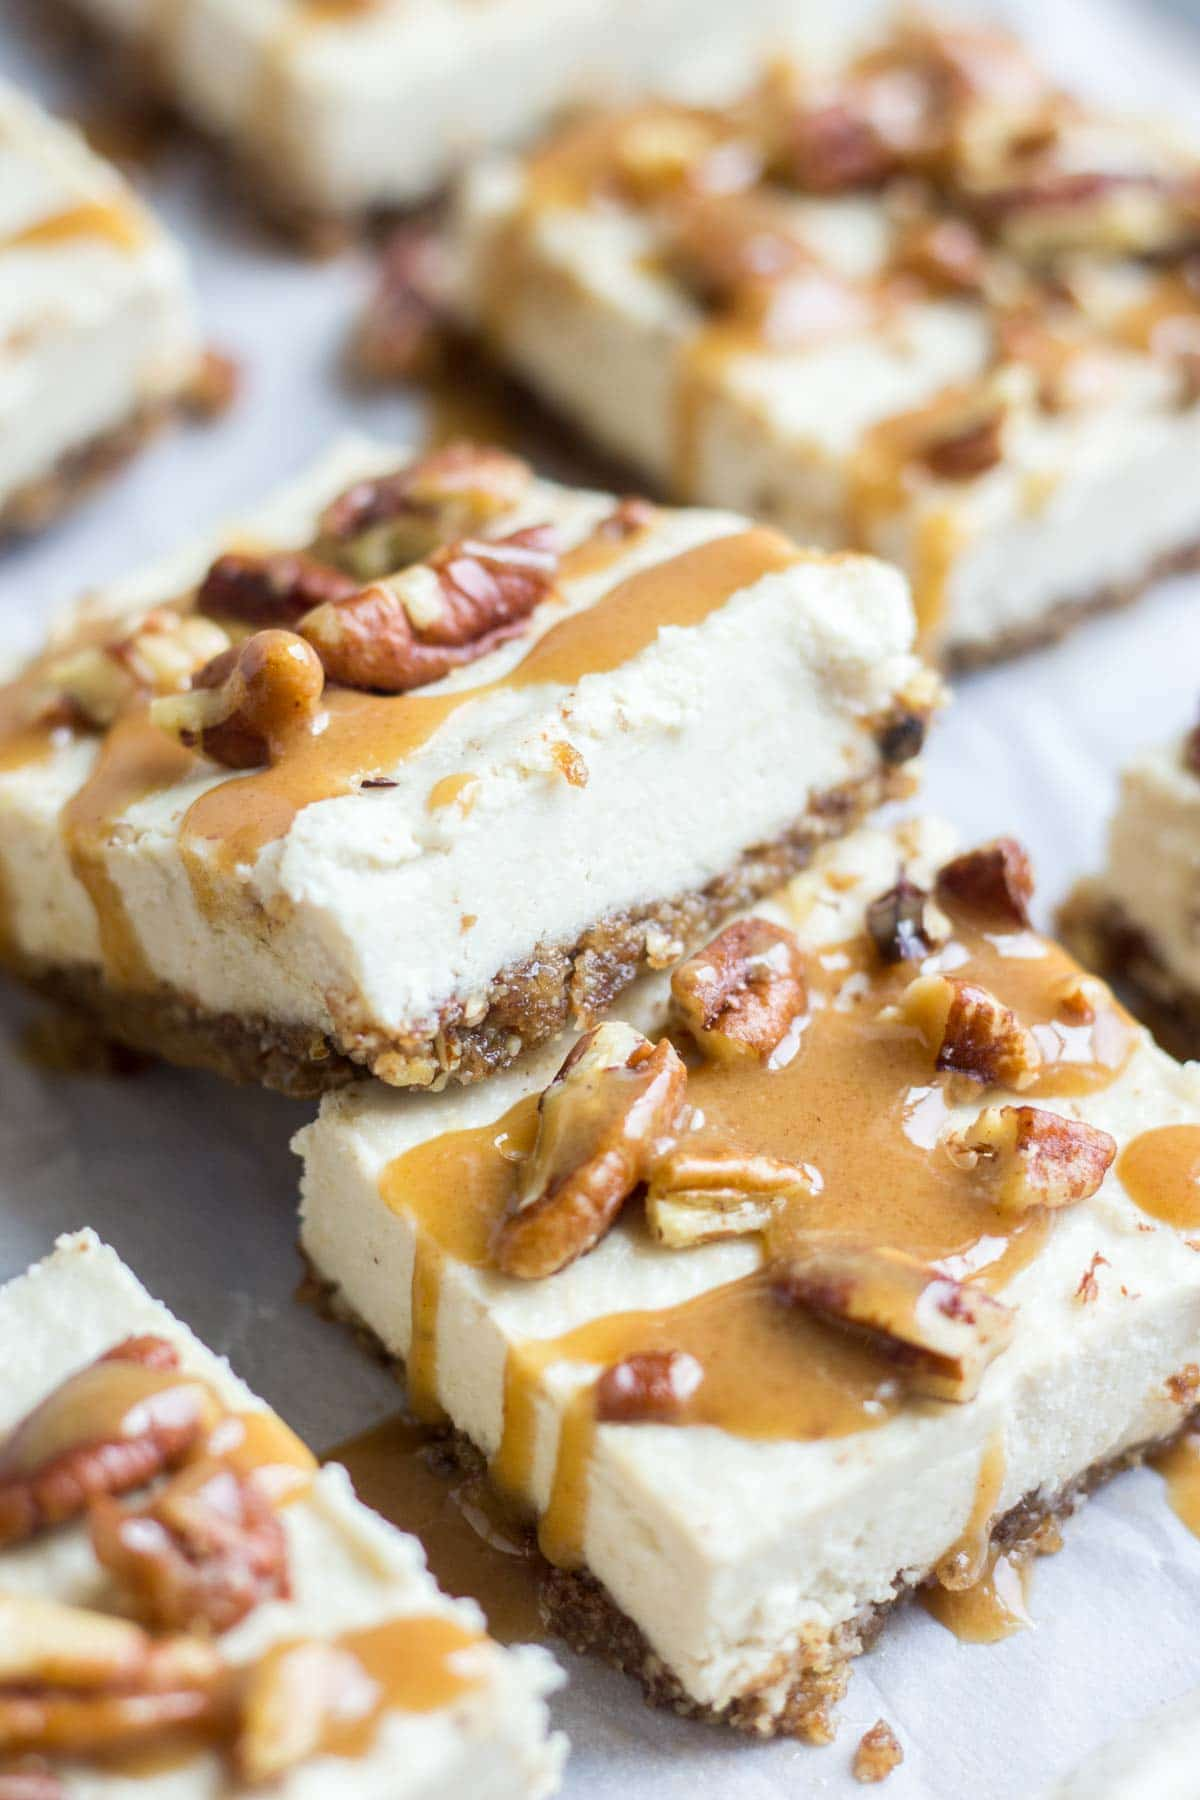 Smooth and creamy, these turtle vegan cheesecake bars are an easy and no bake healthy dessert. The crust is made with pecans and dates and the silky vegan cheesecake is topped with paleo caramel and pecans. You won't believe how yummy an easy it is to make!